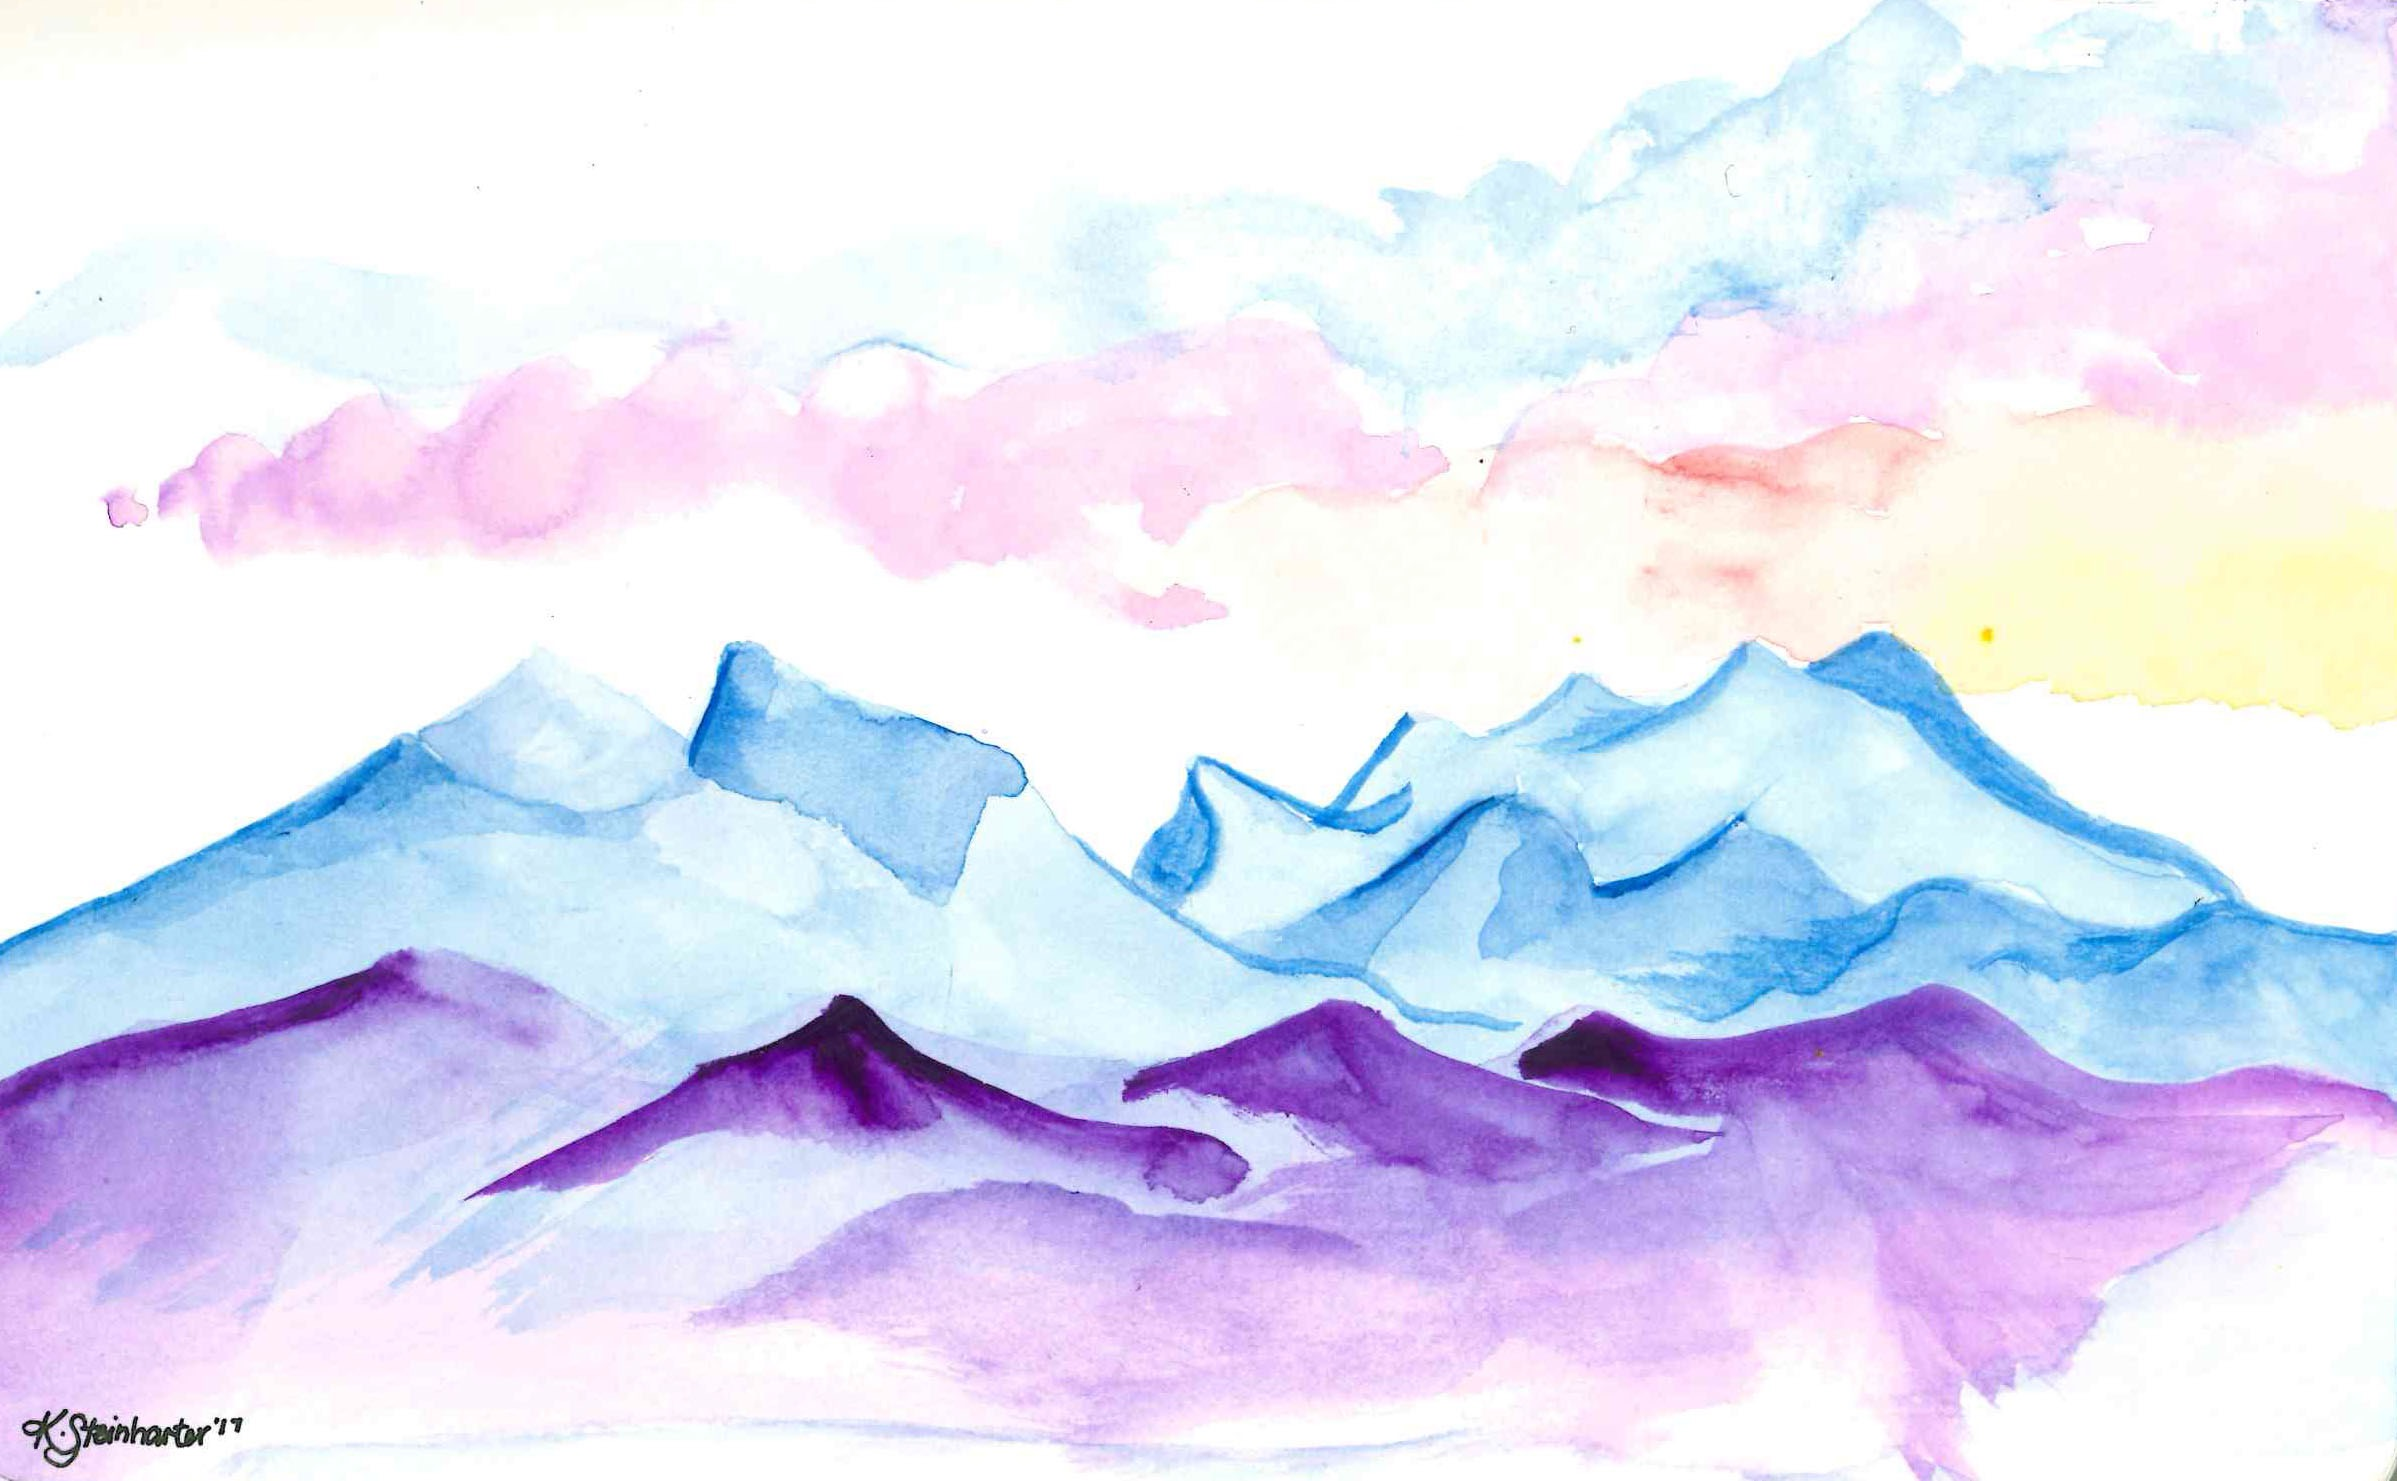 Gore Range Silverthorne watercolor mountains by katie steinharter